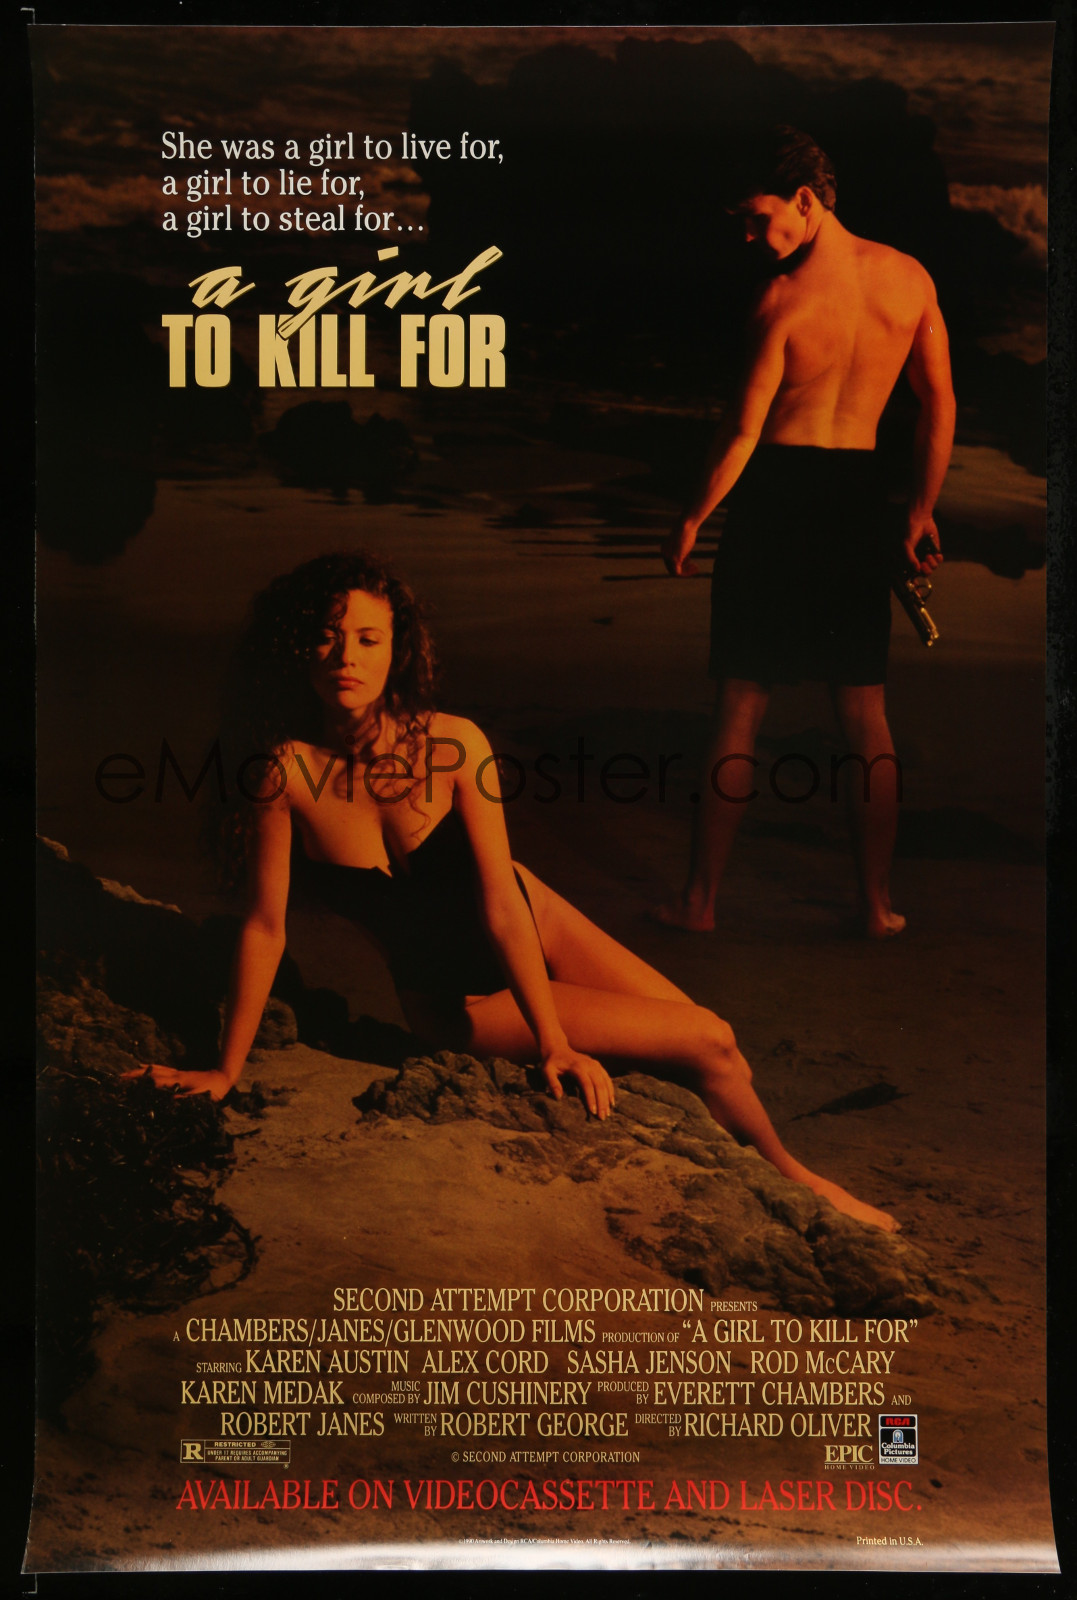 A Girl To Kill For 2A323 A Part Of A Lot 18 Unfolded Single-Sided Video Posters '90S A Variety Of Movie Images!